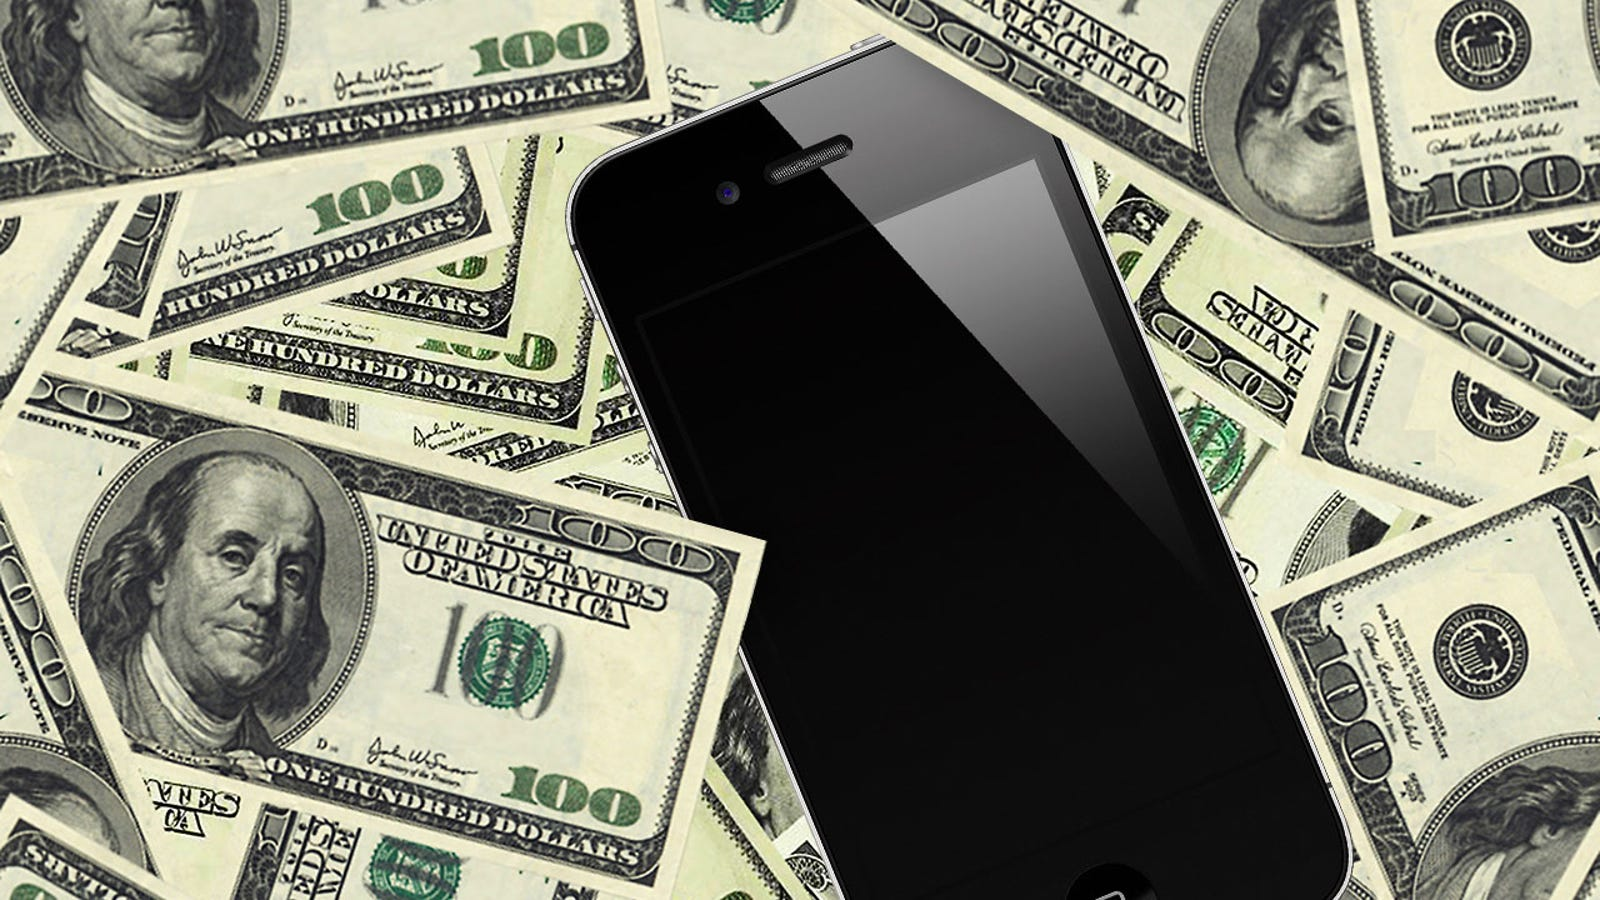 where should i sell my smartphone to get the most money